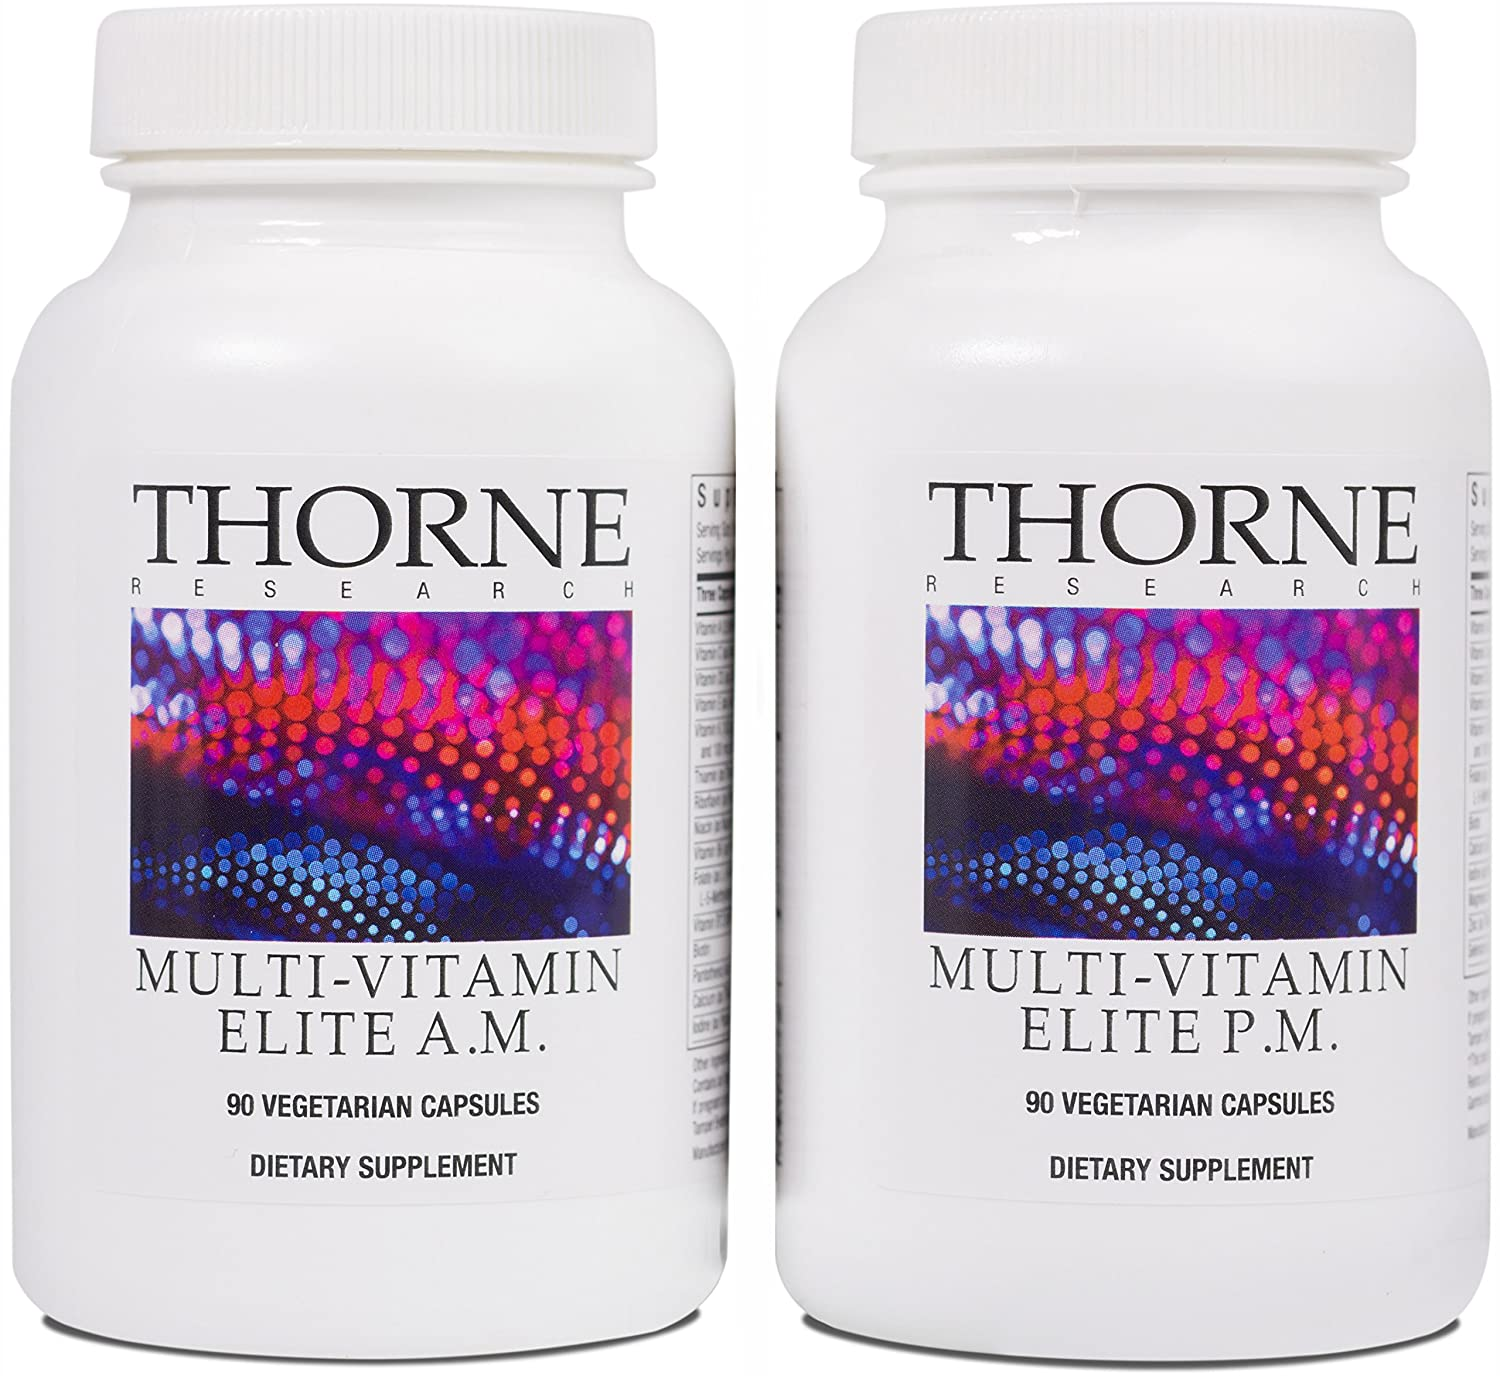 Thorne Research – Multi-Vitamin Elite – A.M. and P.M. Formula to Support a High-Performance Nutrition Program – NSF Certified for Sport – 180 Capsules Thorne Research